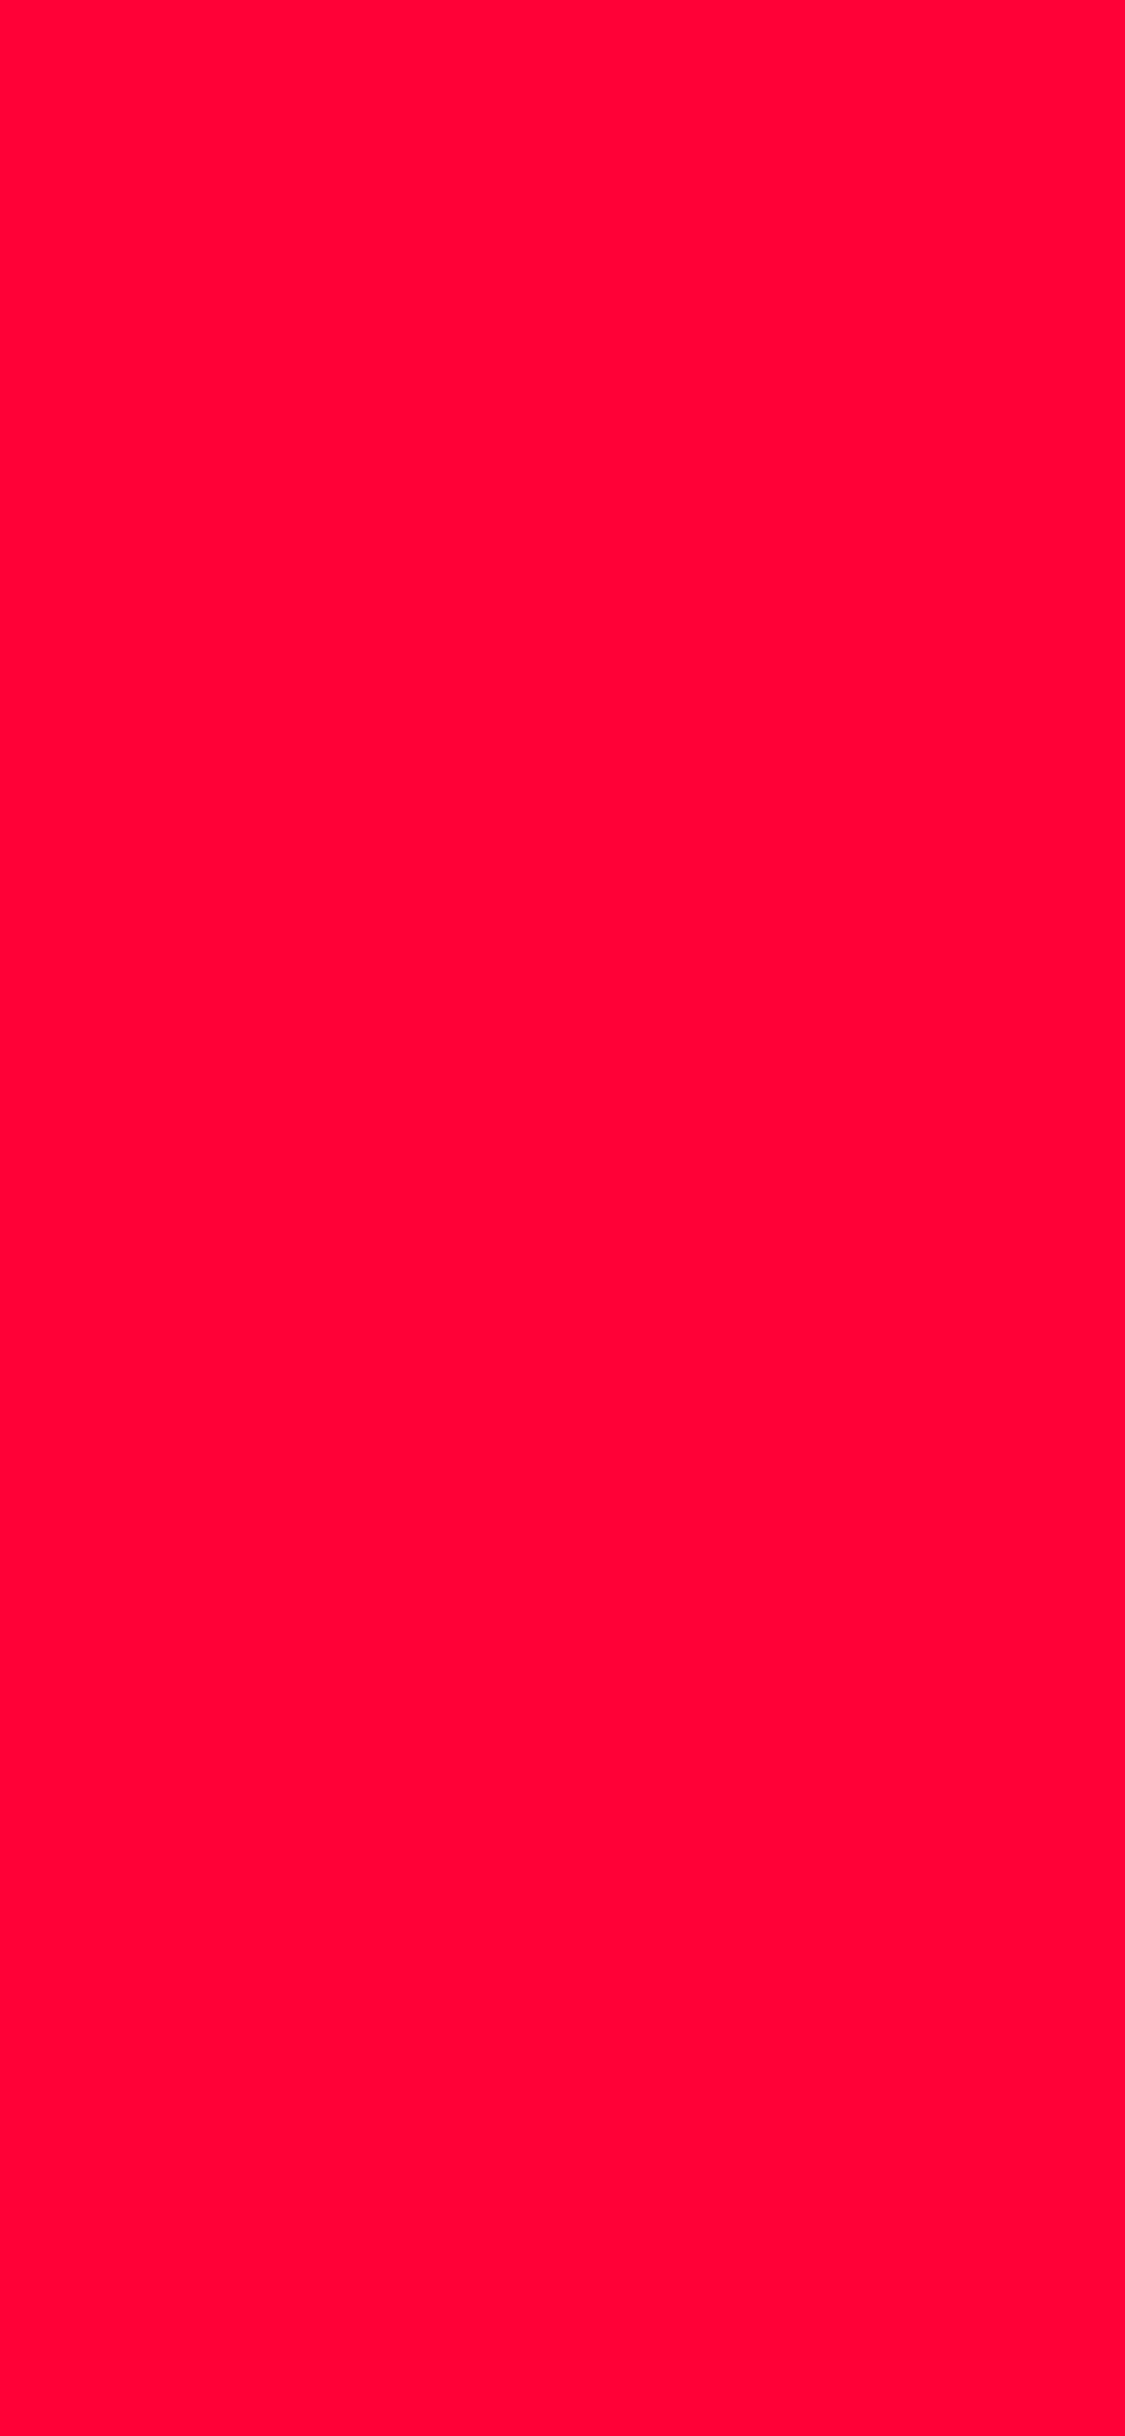 1125x2436 Carmine Red Solid Color Background